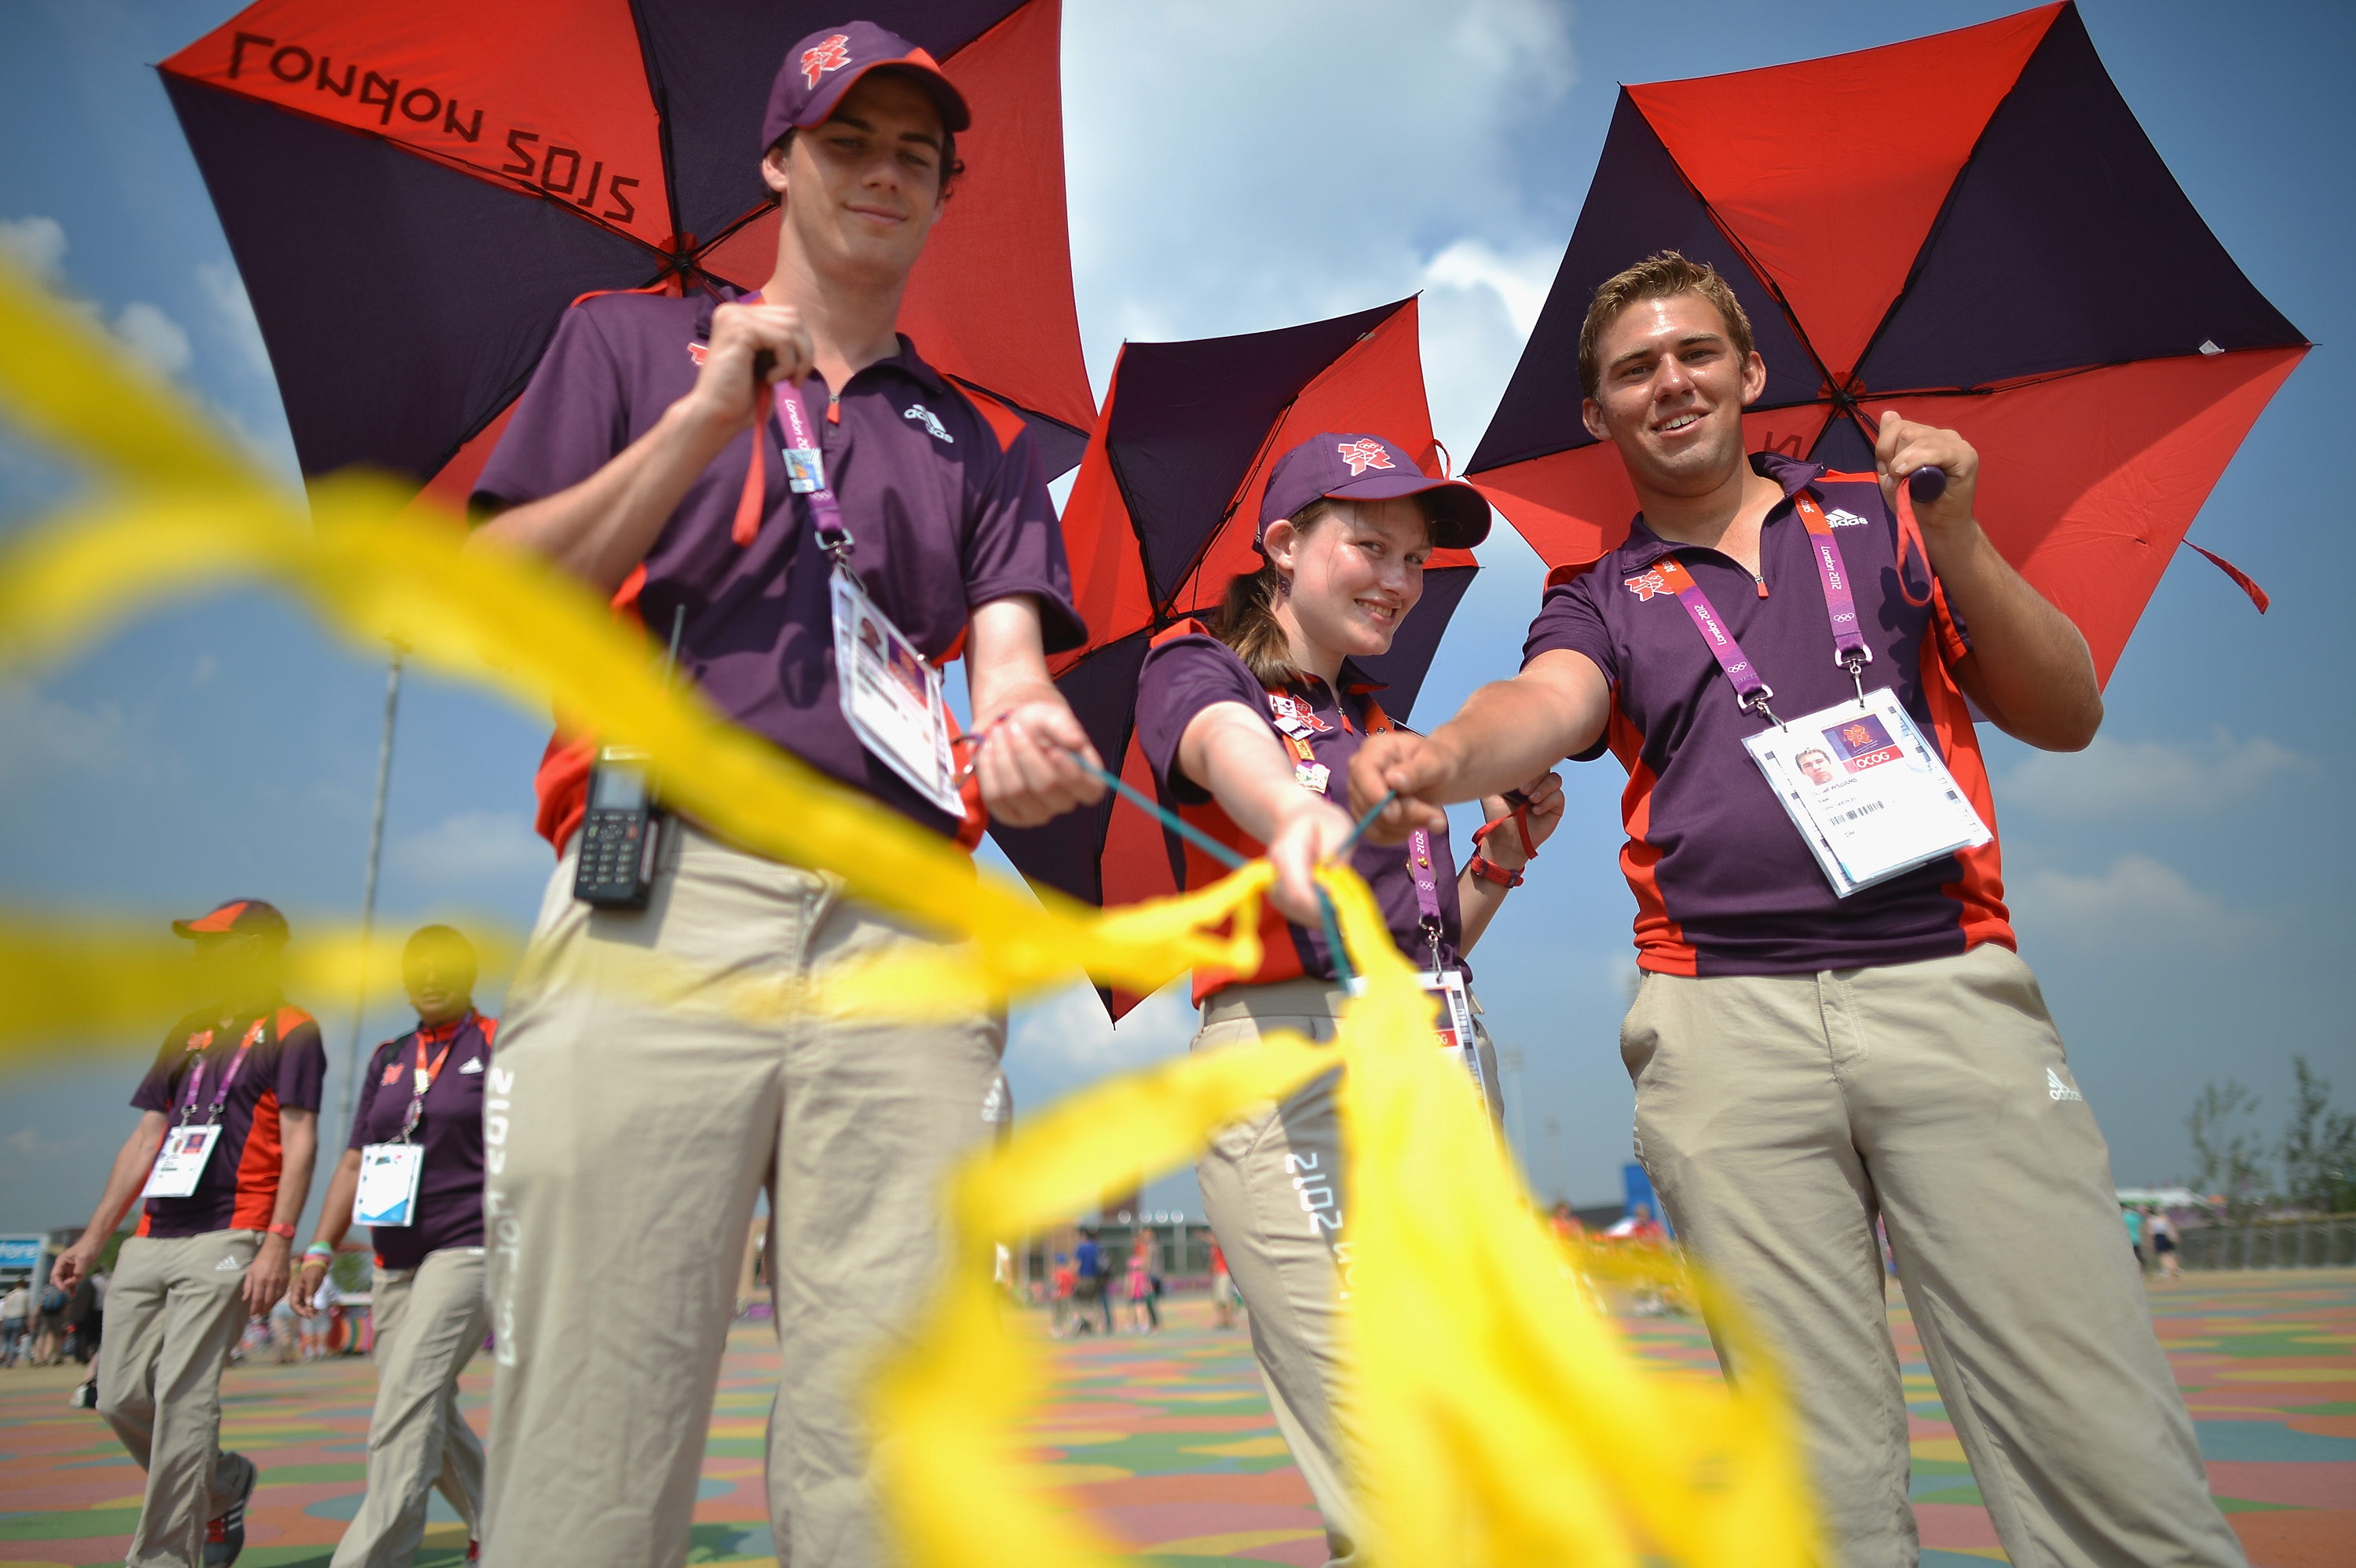 Thousand of Olympic volunteers have spent the past two weeks helping with all aspects around the Games with endless enthusiasm.